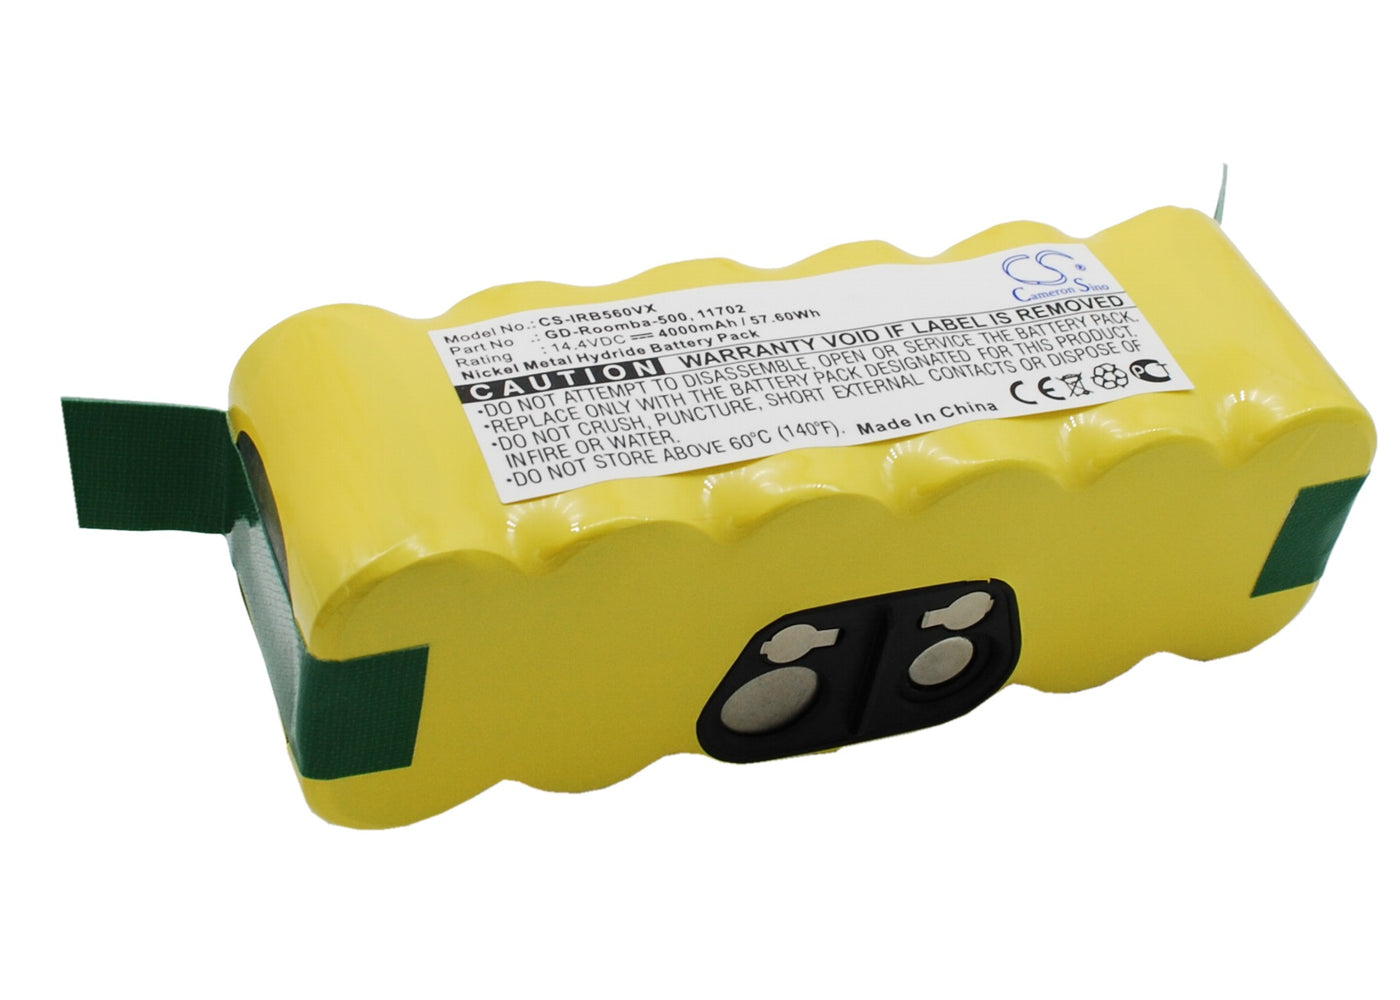 CS-IRB560VX Cameron Sino Battery